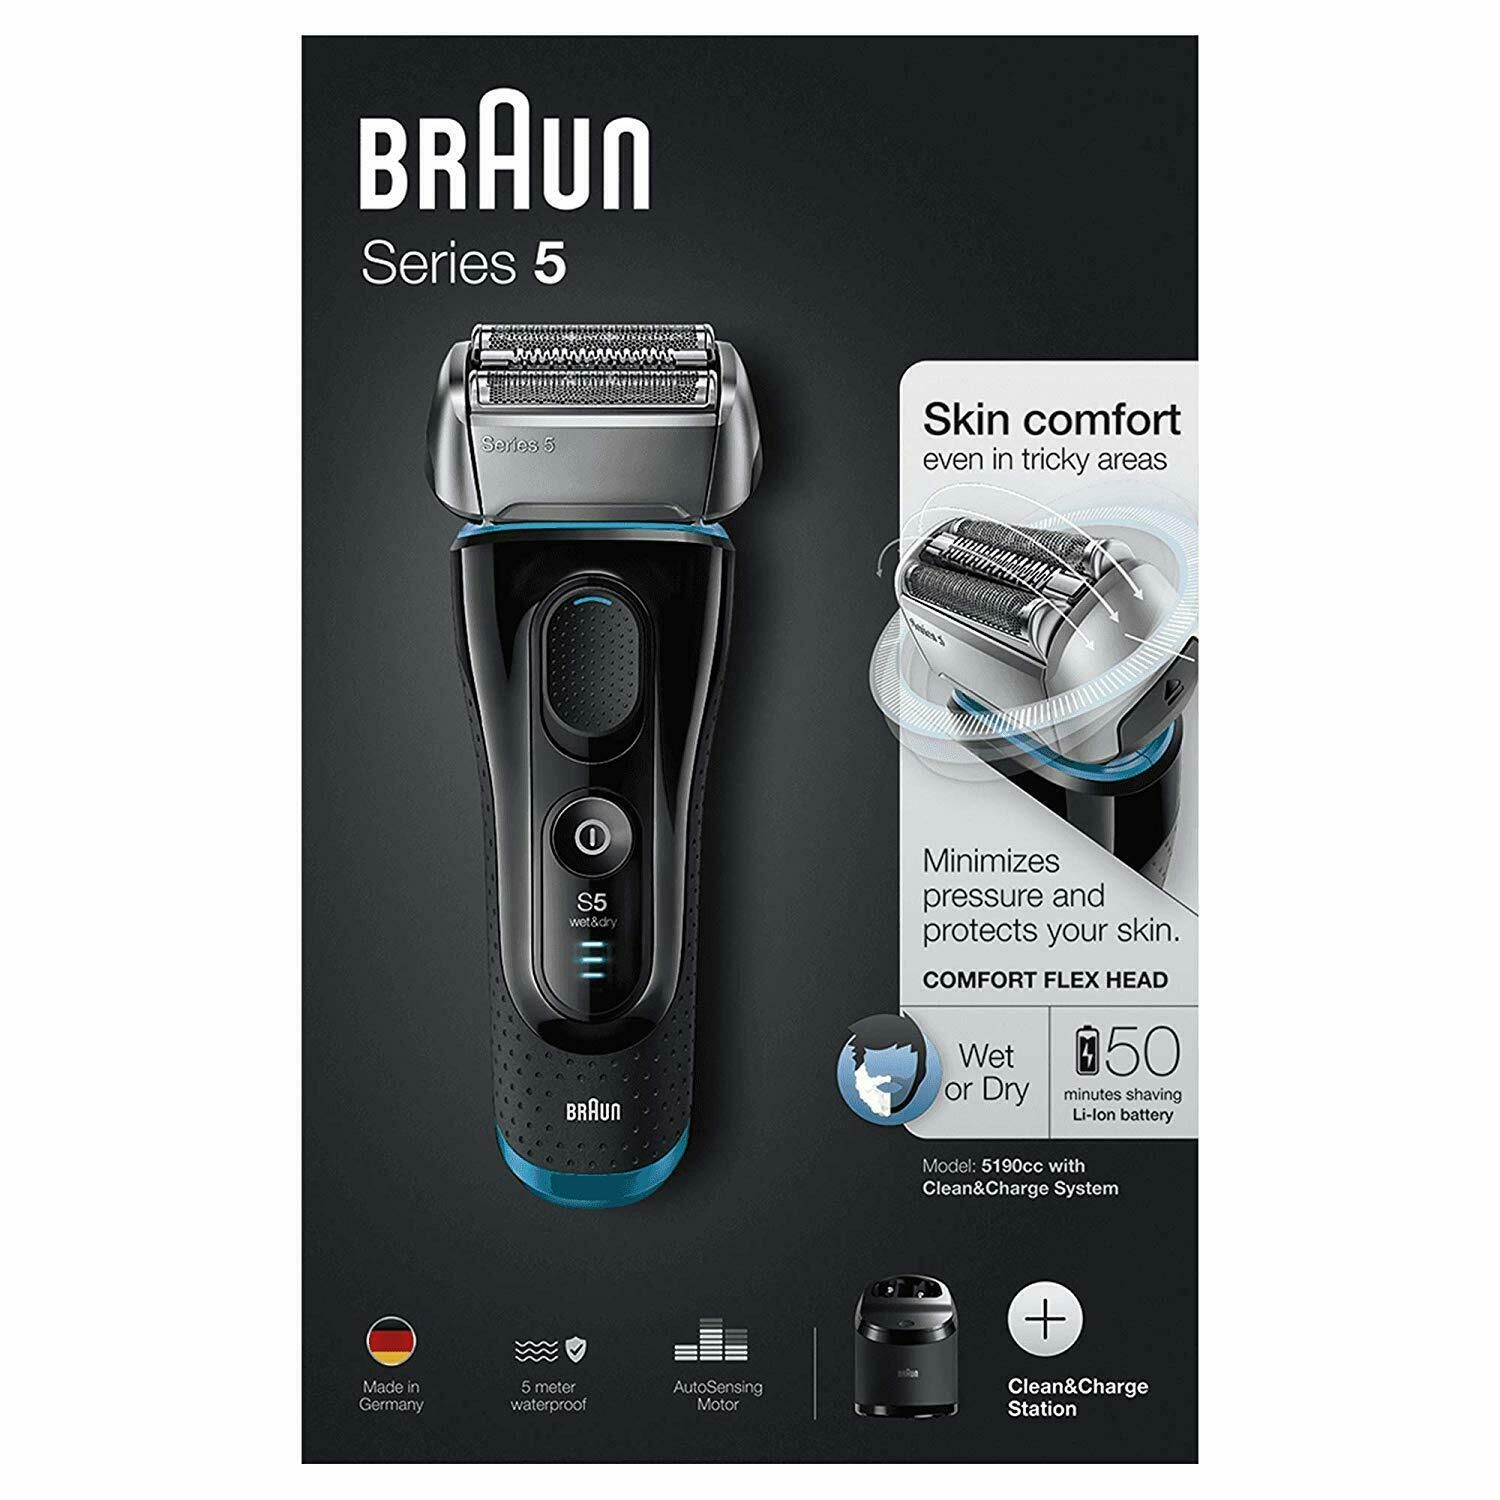 Braun Series 5 5190cc Wet & Dry Shaver with Clean & Charge Station Black & Blue